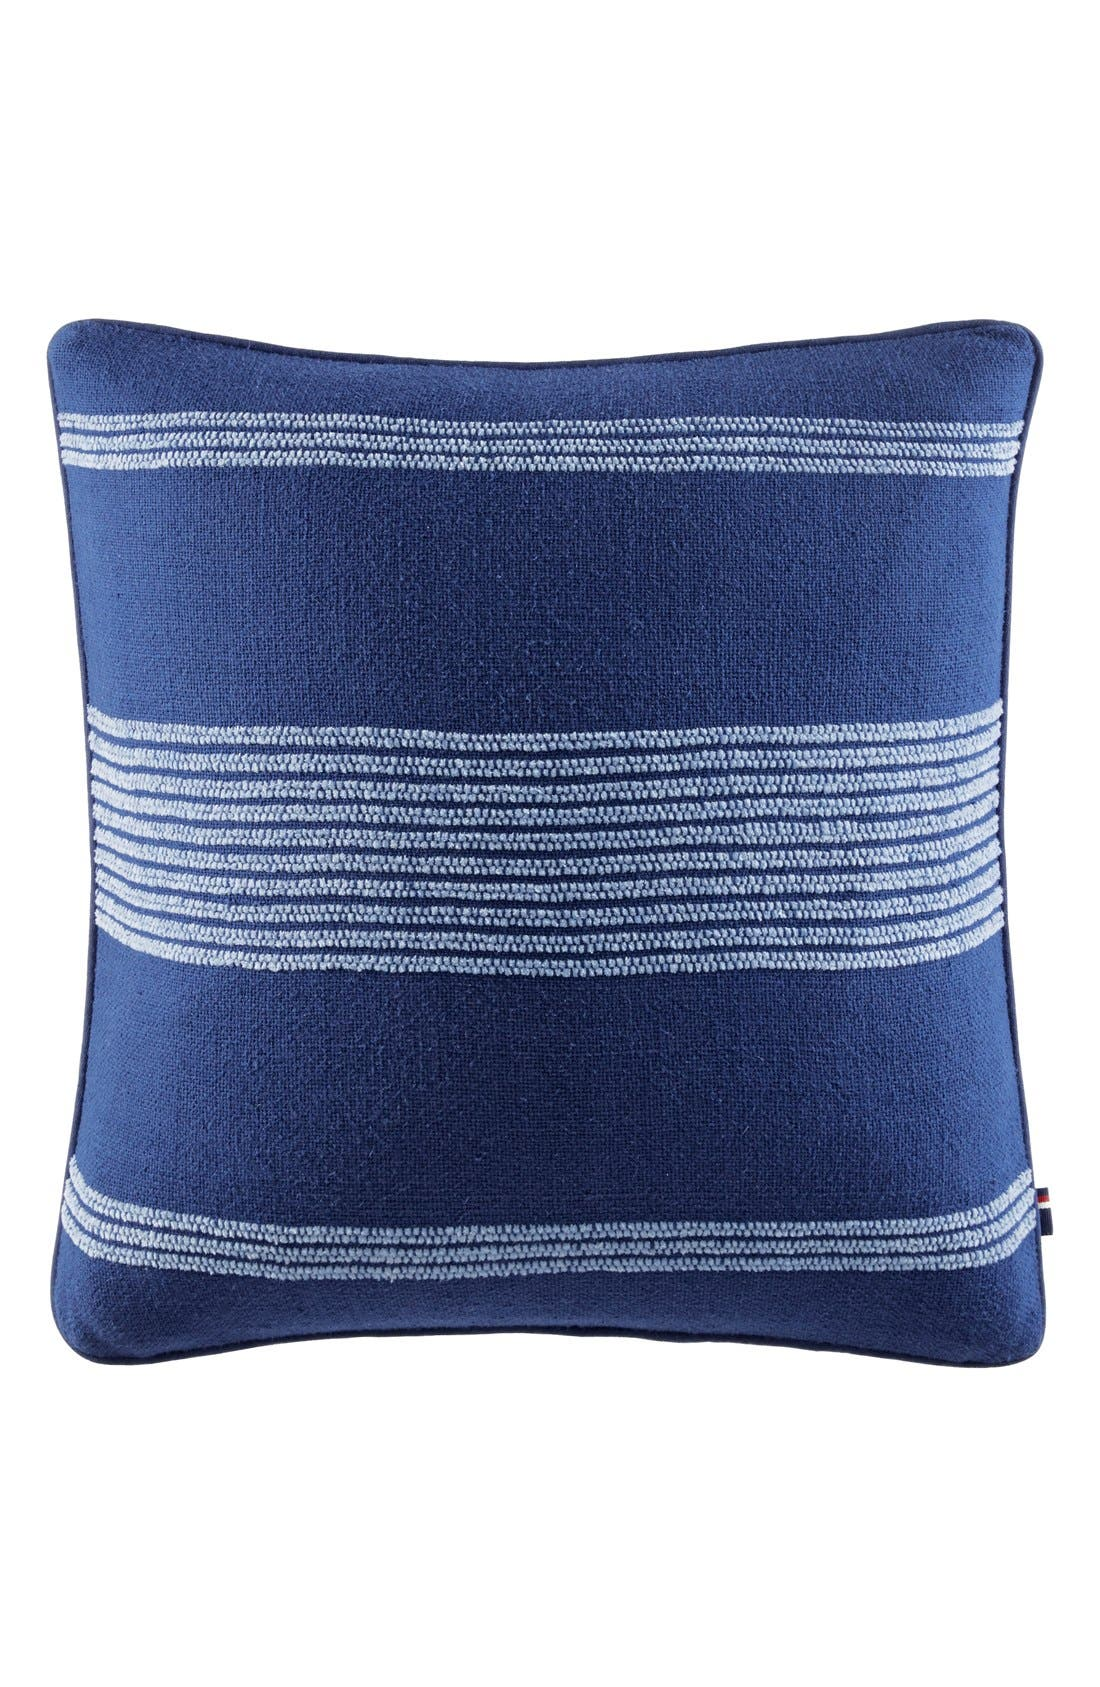 Alternate Image 1 Selected - Tommy Hilfiger Pacific Horizon Accent Pillow